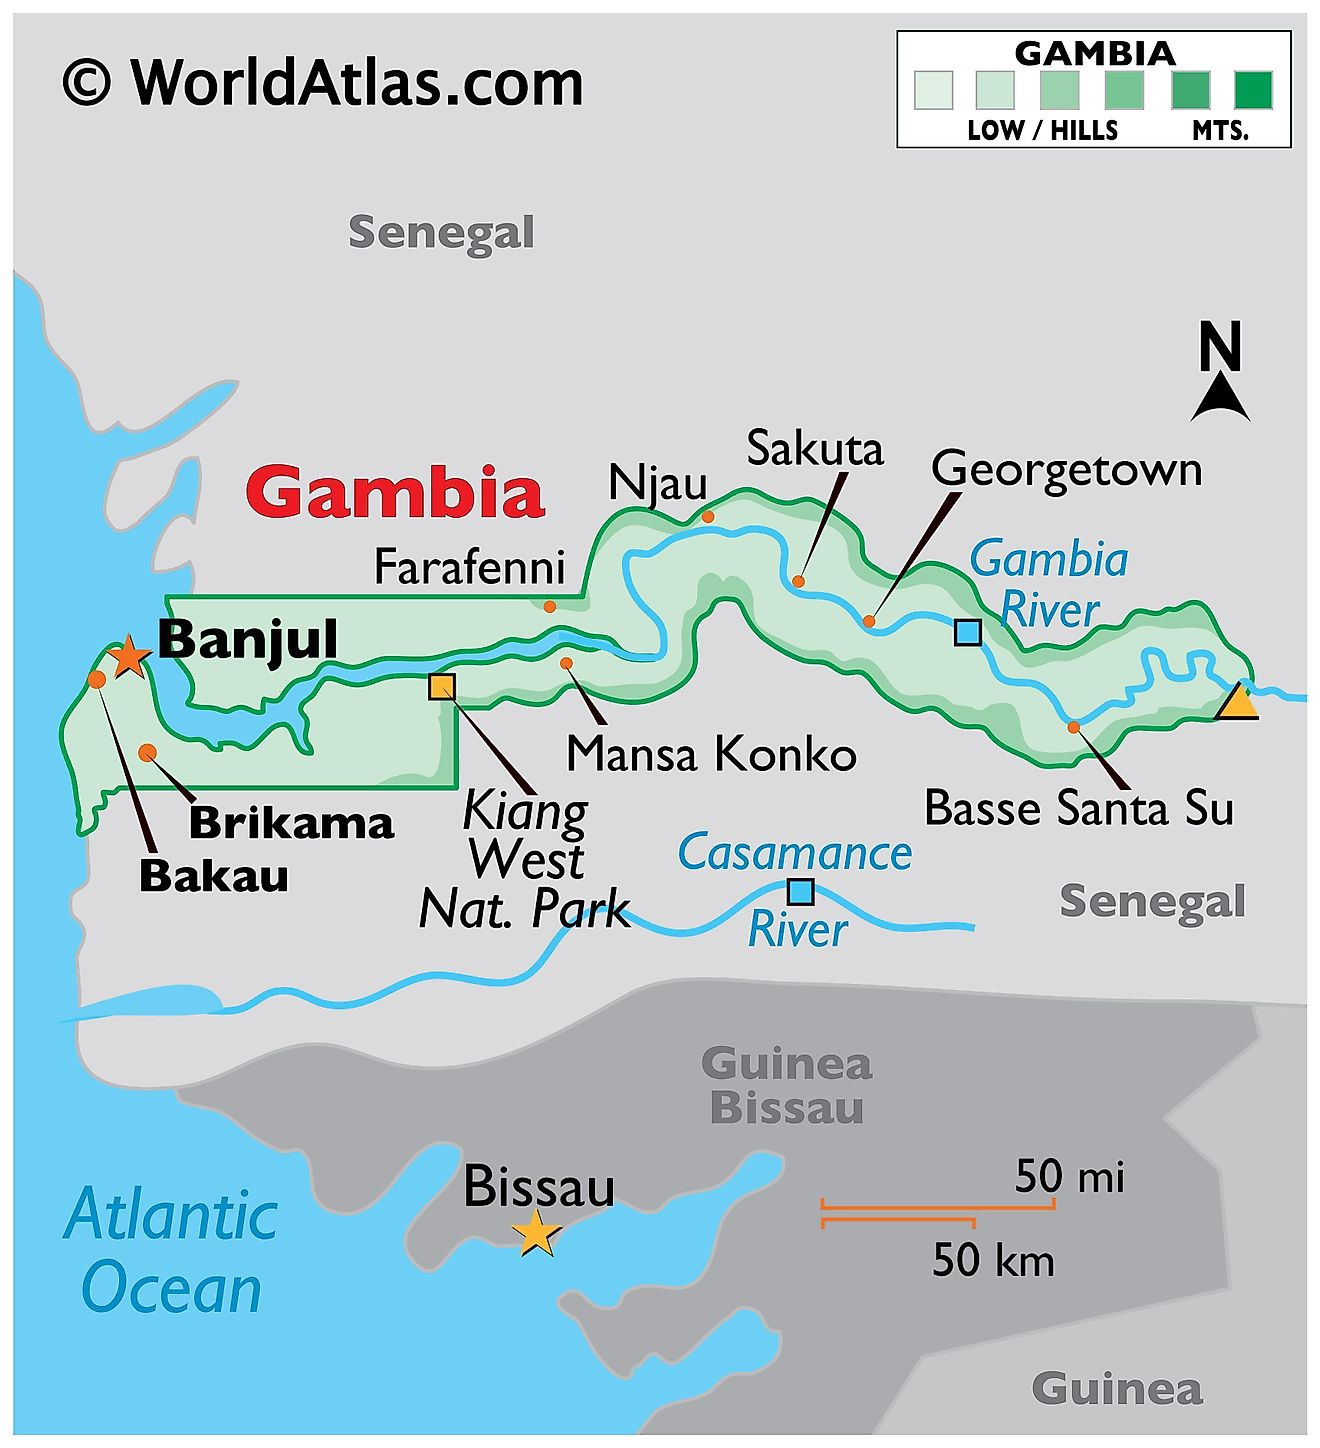 Physical Map of The Gambia showing the state boundaries, relief, The Gambia River, highest point, and important cities.